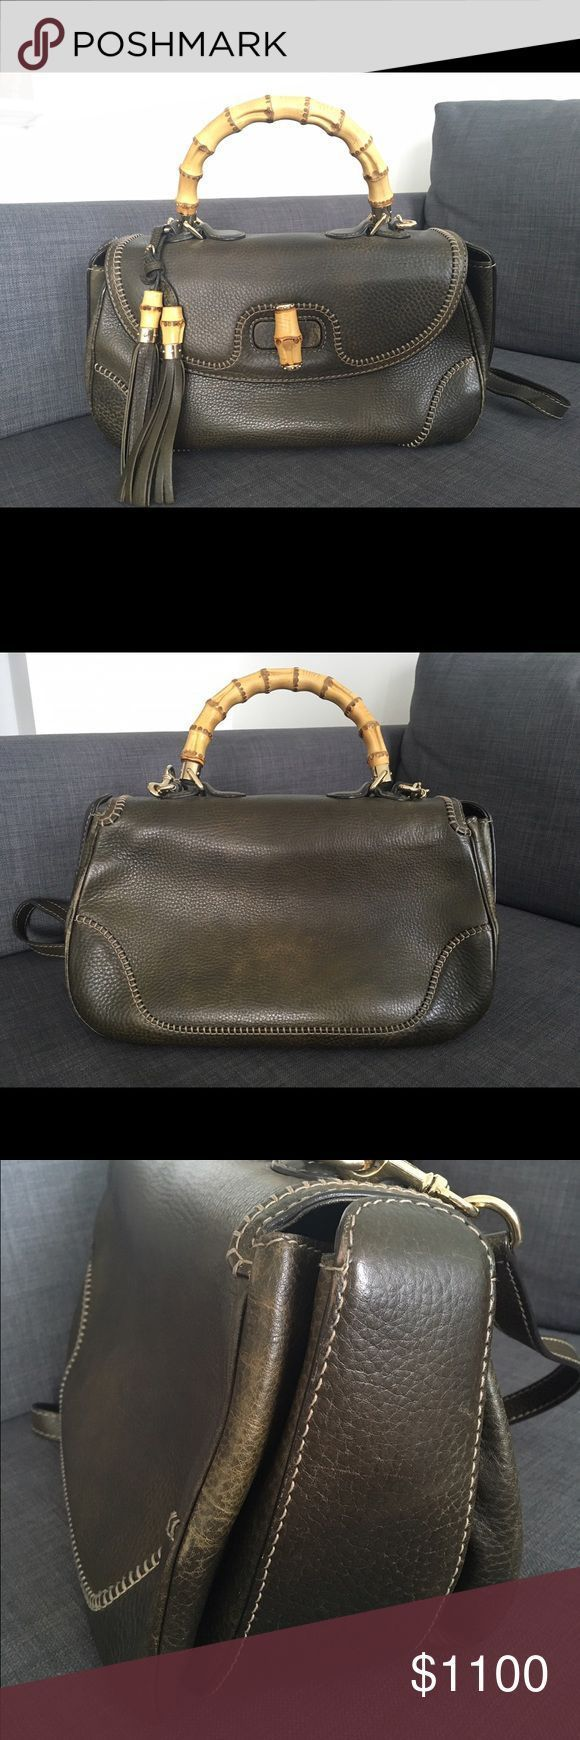 Gucci Bamboo Bag Gucci new bamboo LARGE top handle bag in military green l Gucci Bamboo Bag Gucci new bamboo LARGE top handle bag in military green l